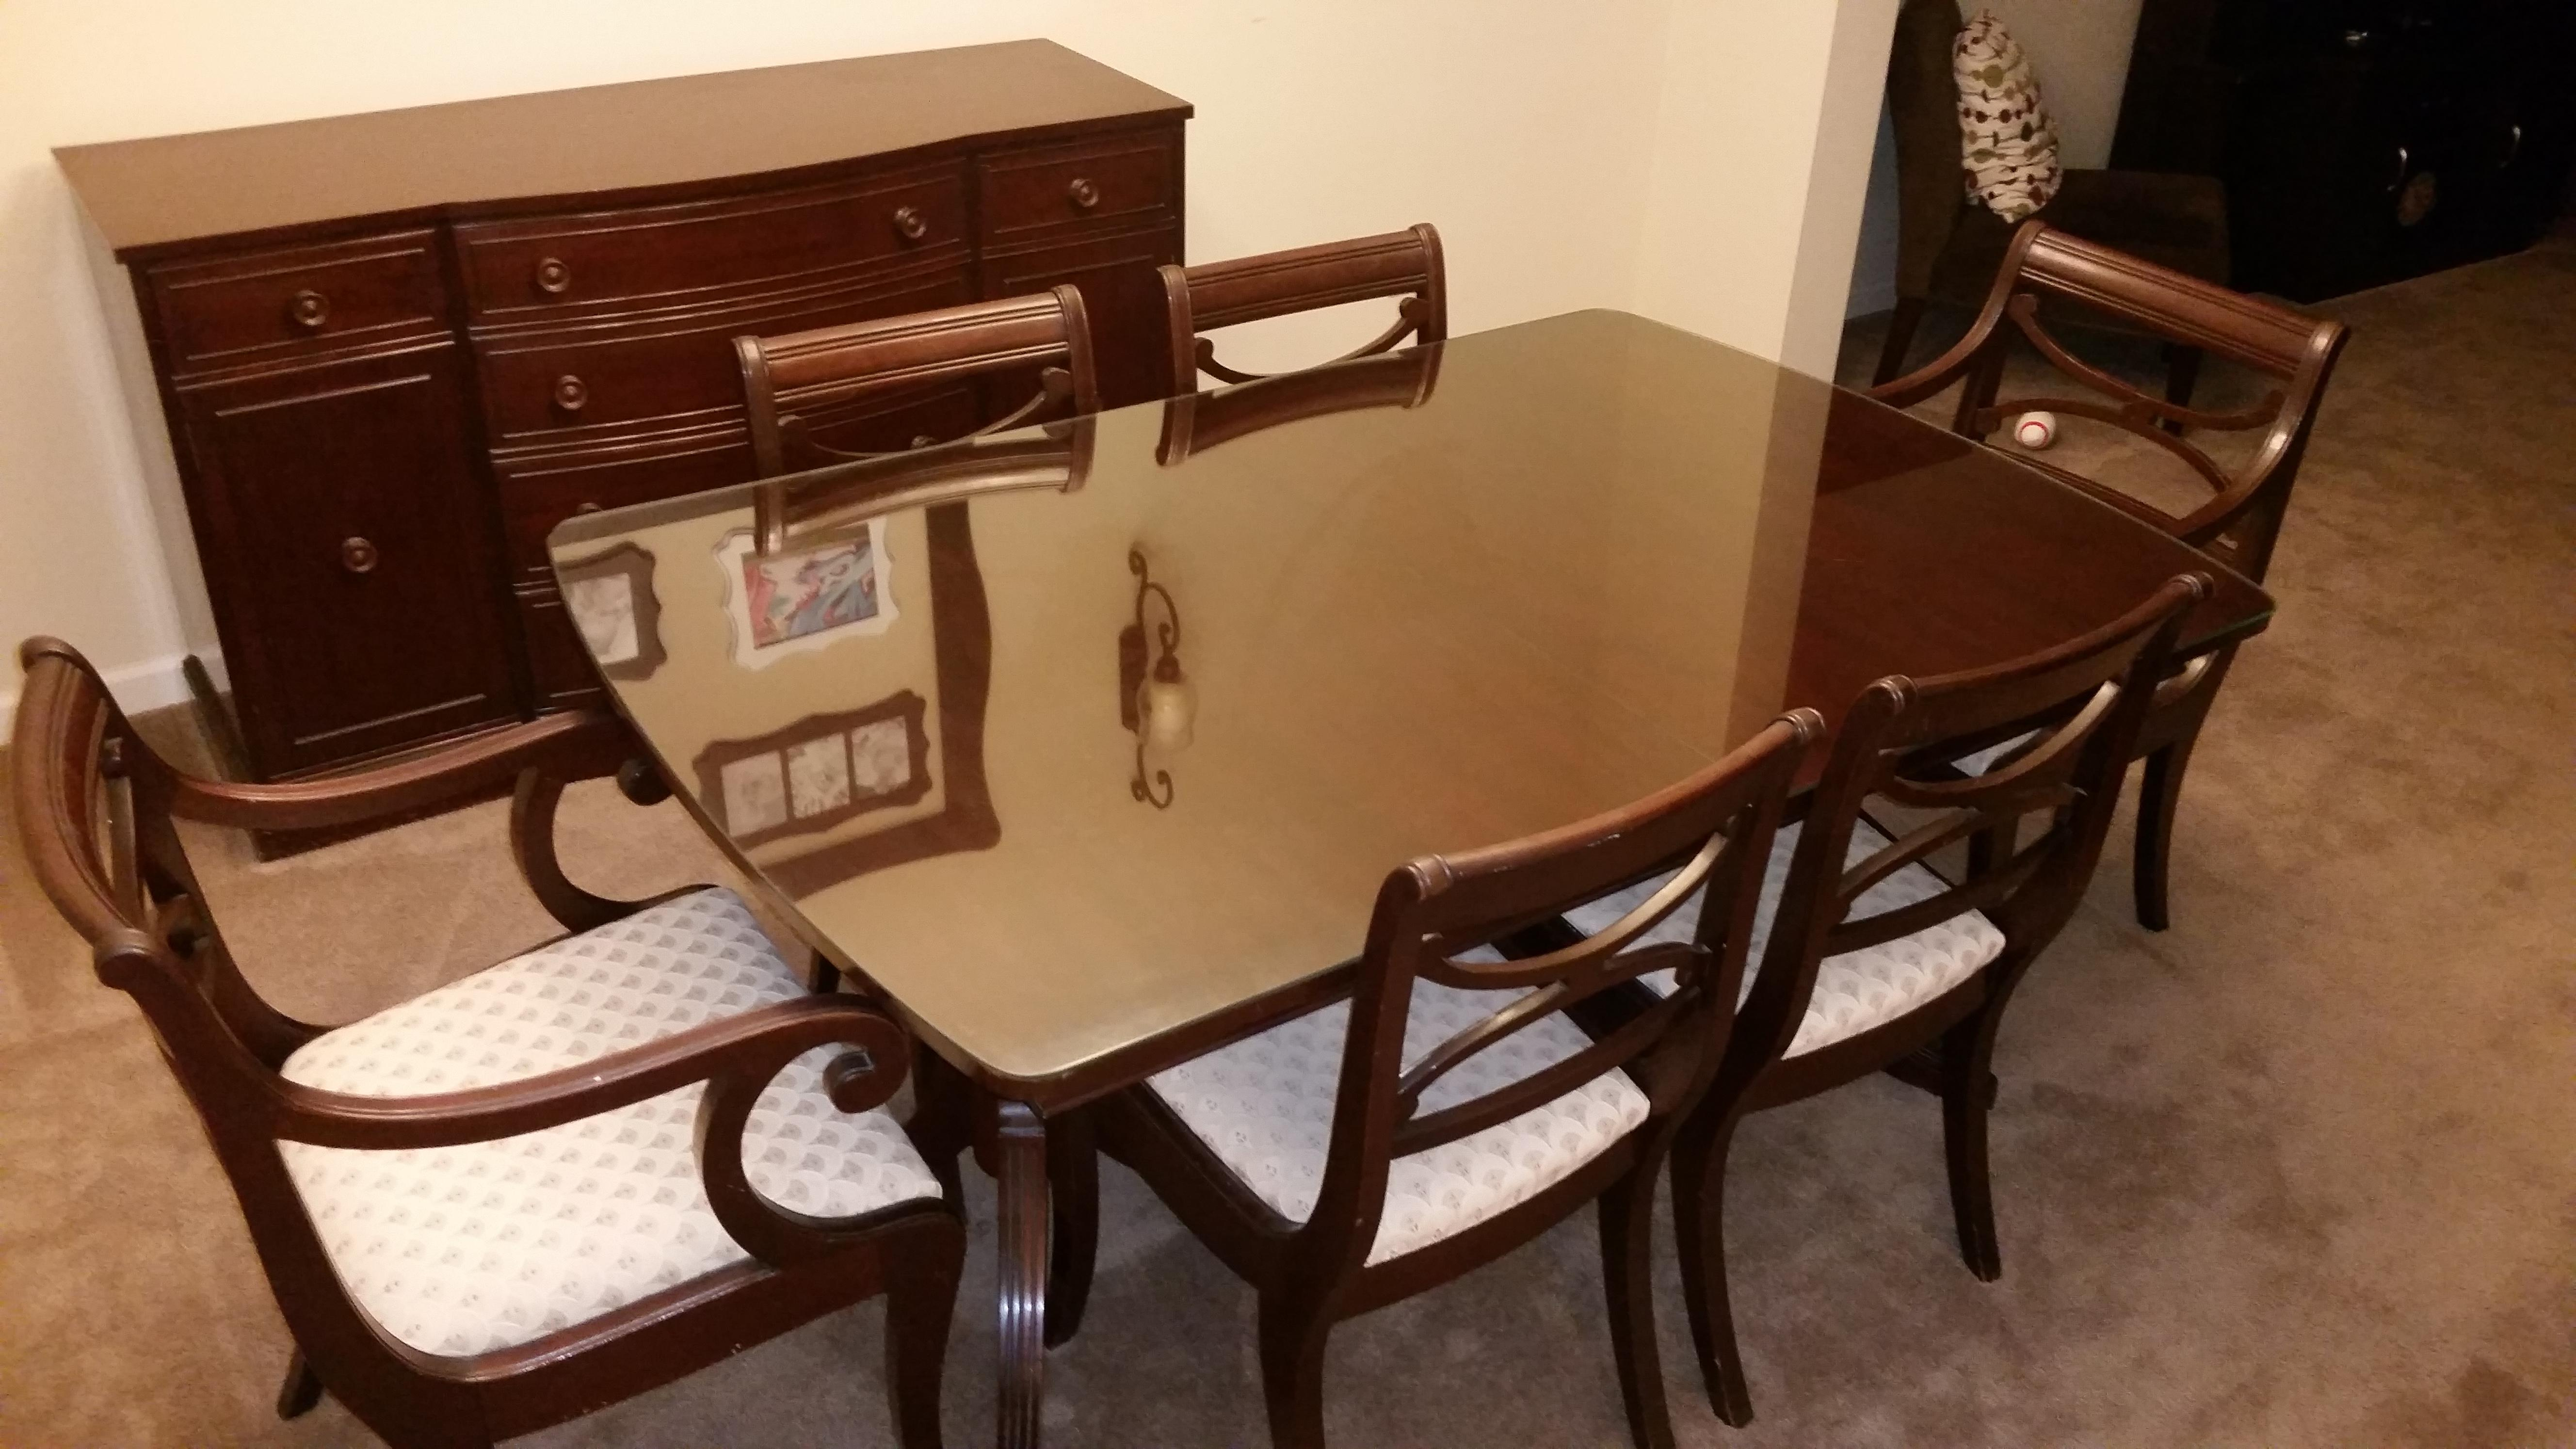 Northern Furniture Company Dining Room Set Antique Appraisal